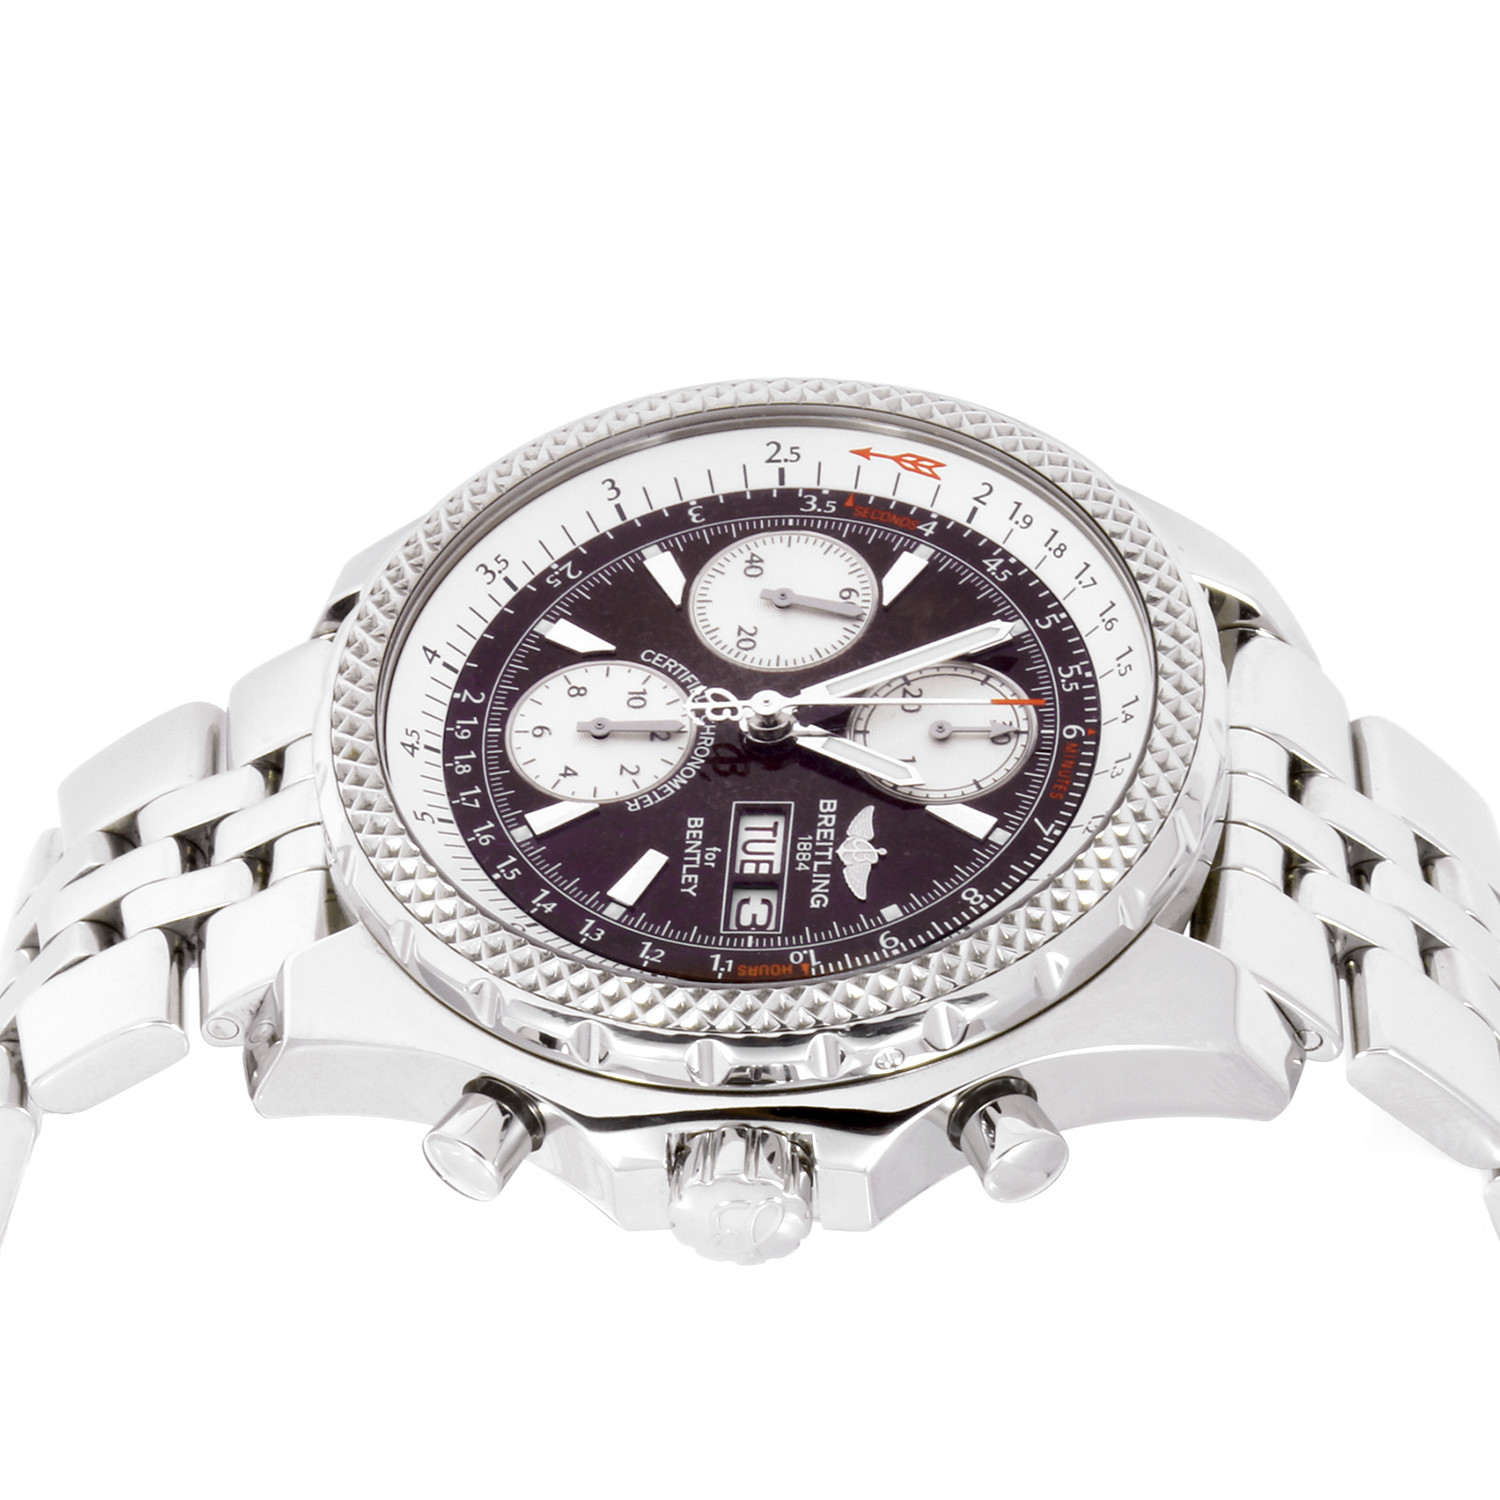 Pre Owned Bentley For Sale: Breitling Bentley Automatic // OB5484 // Pre-Owned